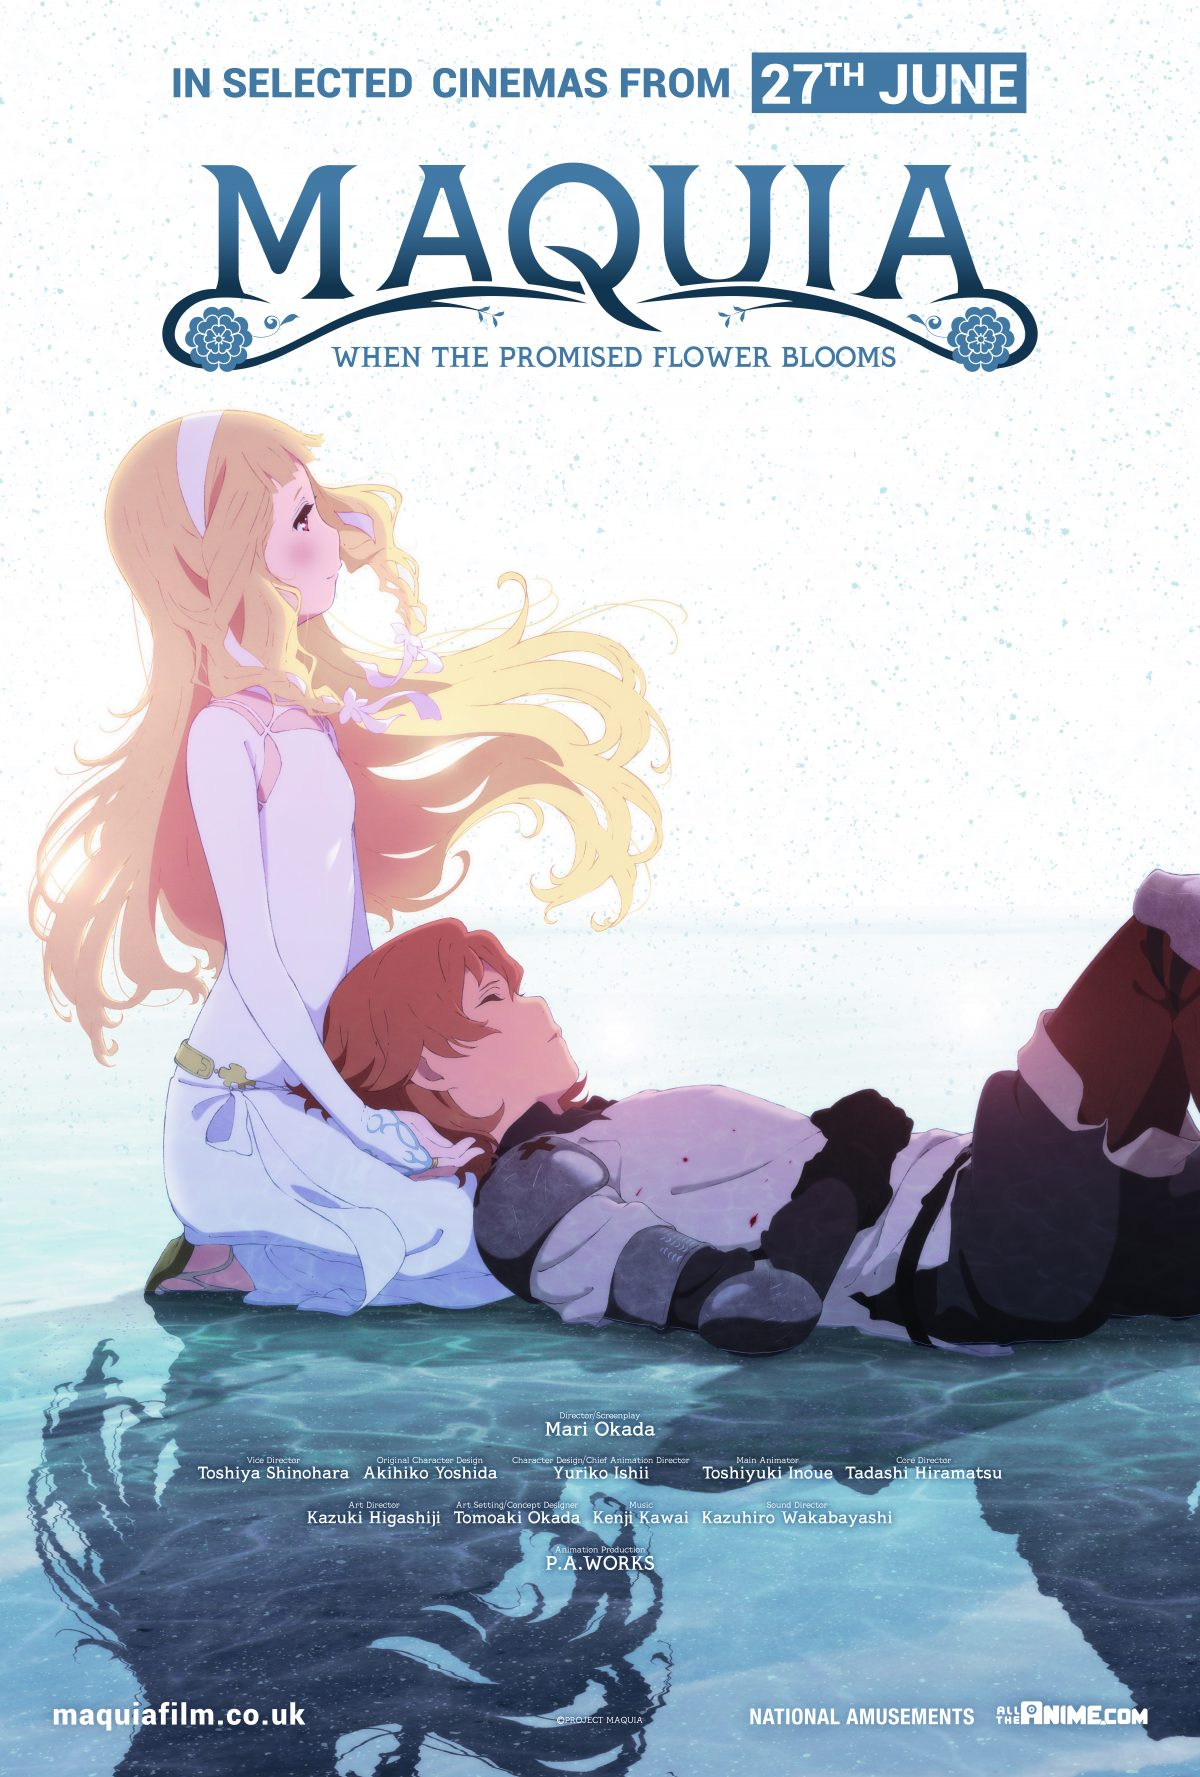 Mari Okada's directorial debut, Maquia: When the Promised Flower Blooms, gets a new poster and trailer released